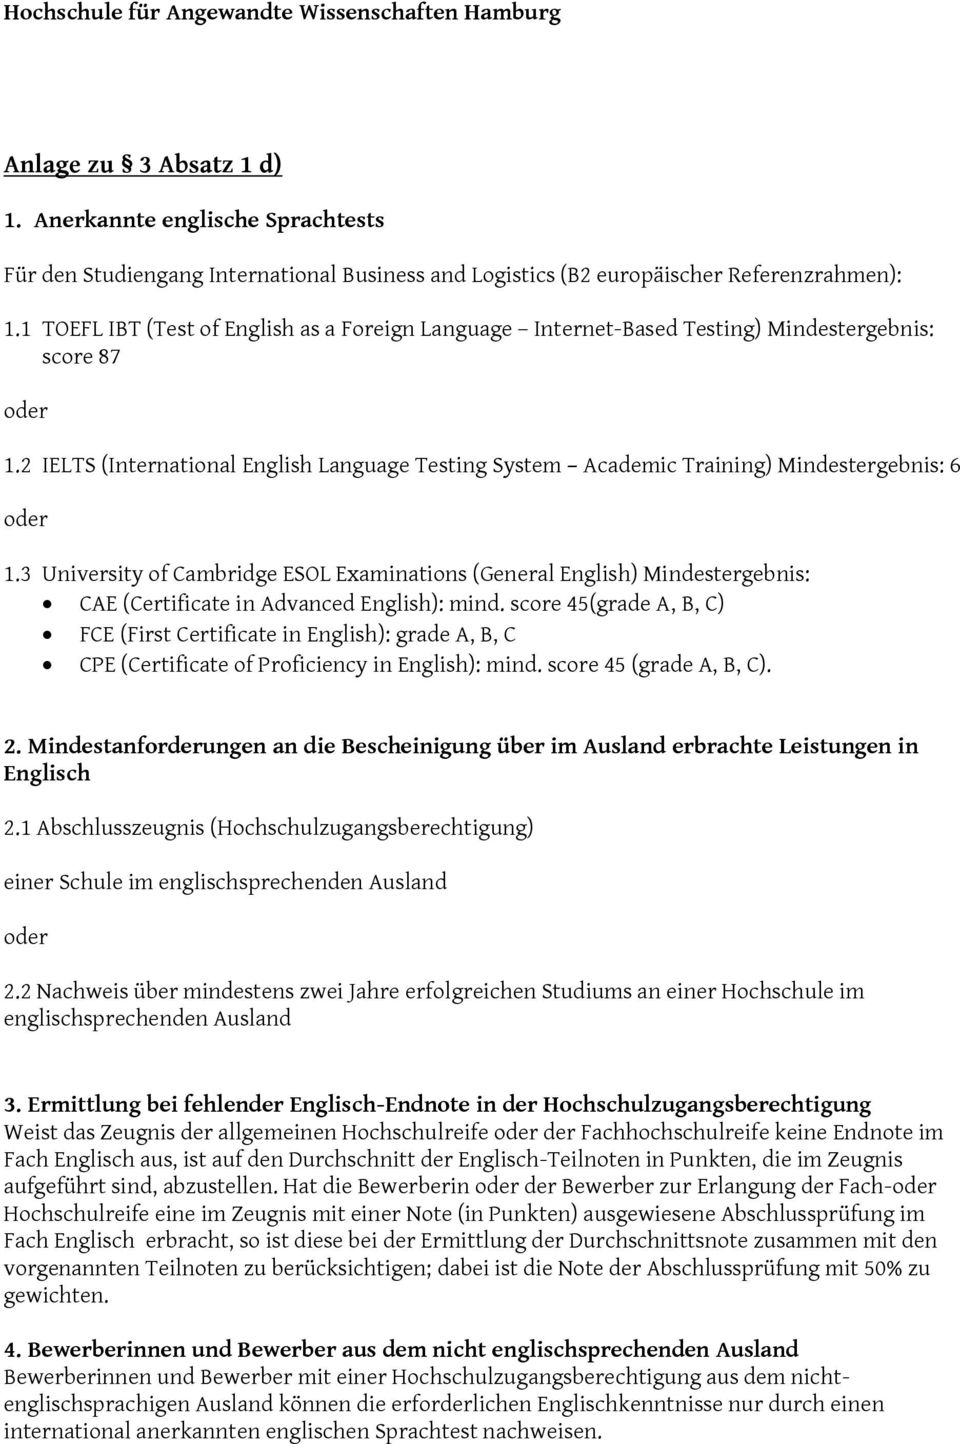 1 TOEFL IBT (Test of English as a Foreign Language Internet-Based Testing) Mindestergebnis: score 87 1.2 IELTS (International English Language Testing System Academic Training) Mindestergebnis: 6 1.